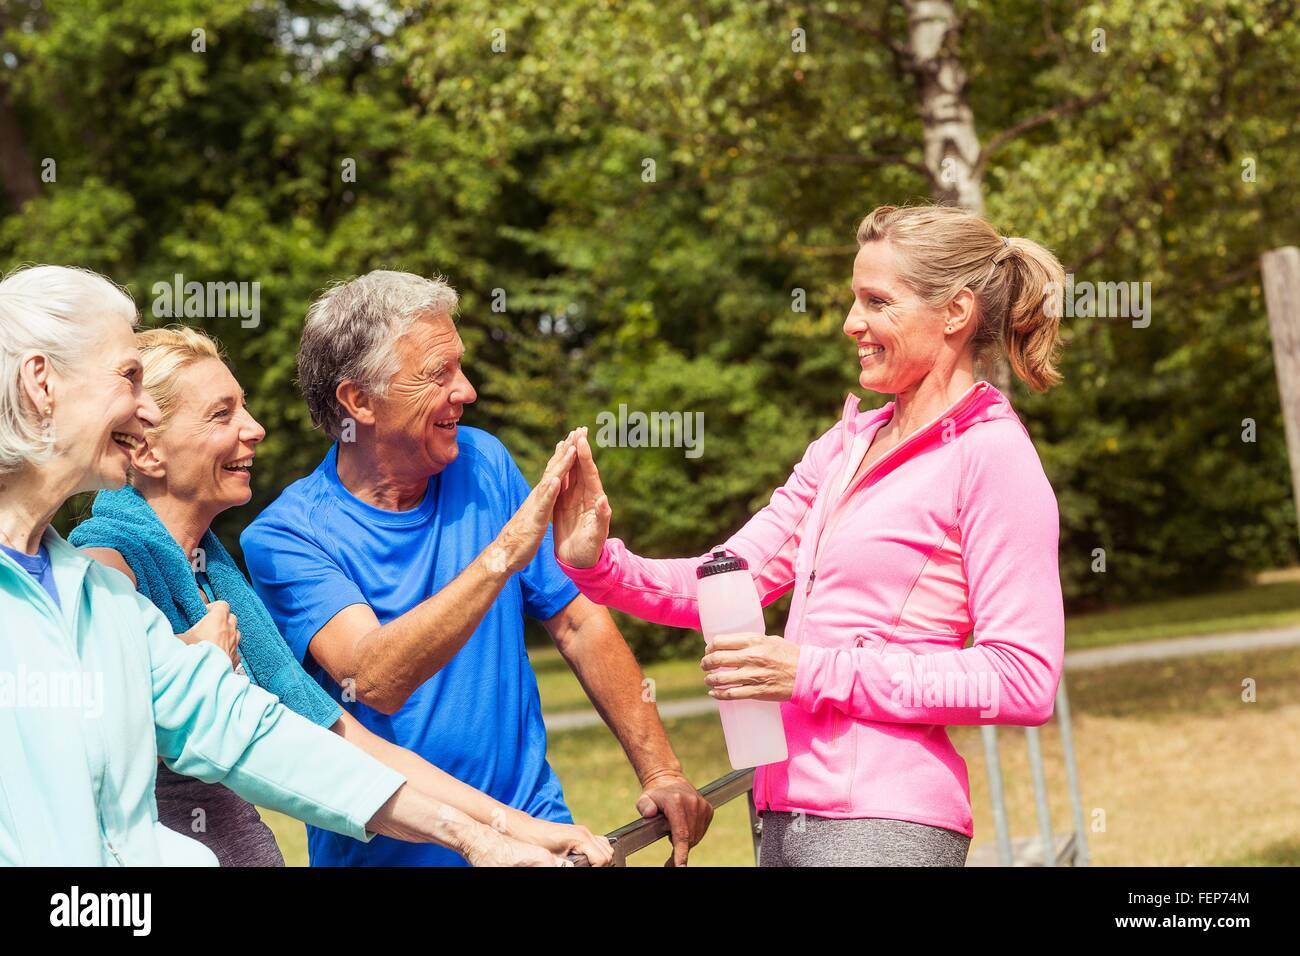 Group of adults taking a break from exercise, outdoors, smiling - Stock Image